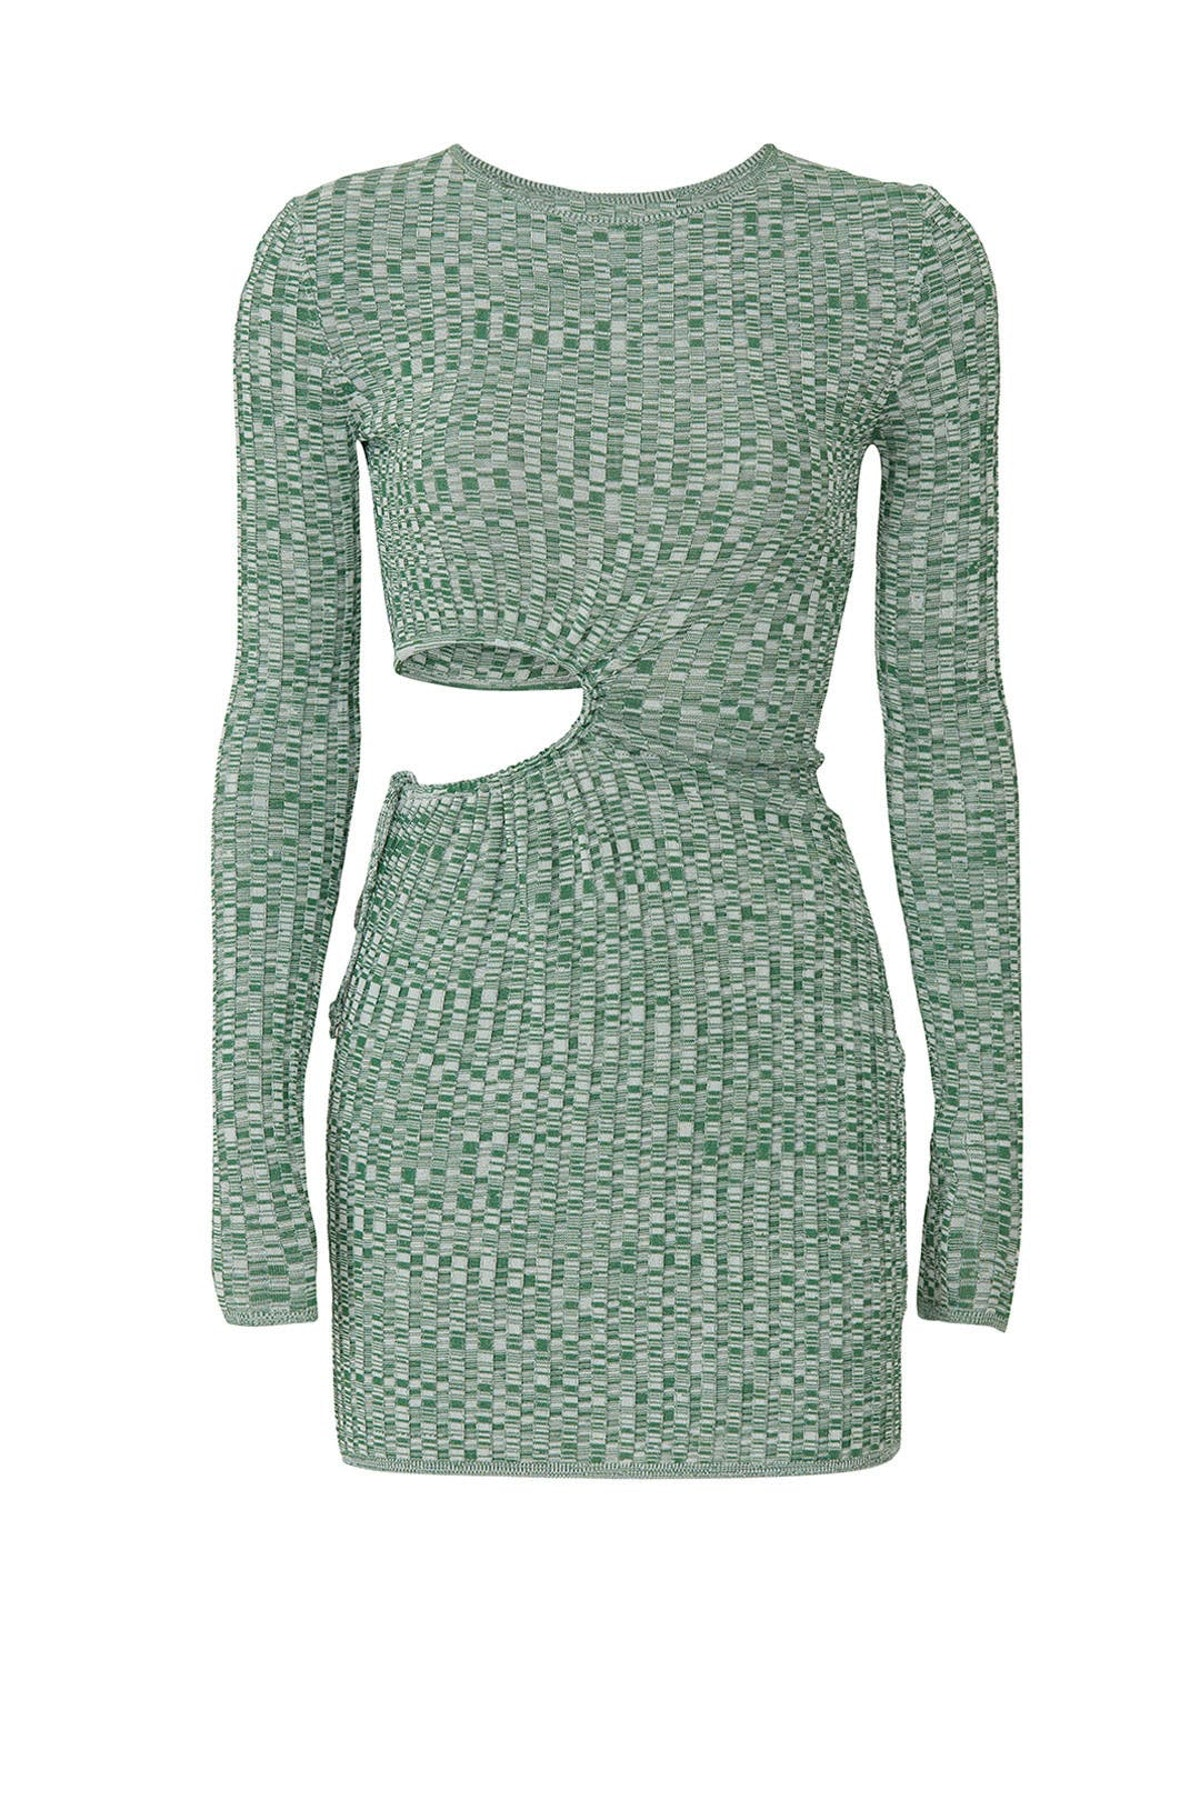 Turquoise cutout knit dress from Aya Muse, available to shop or rent via Rent The Runway.